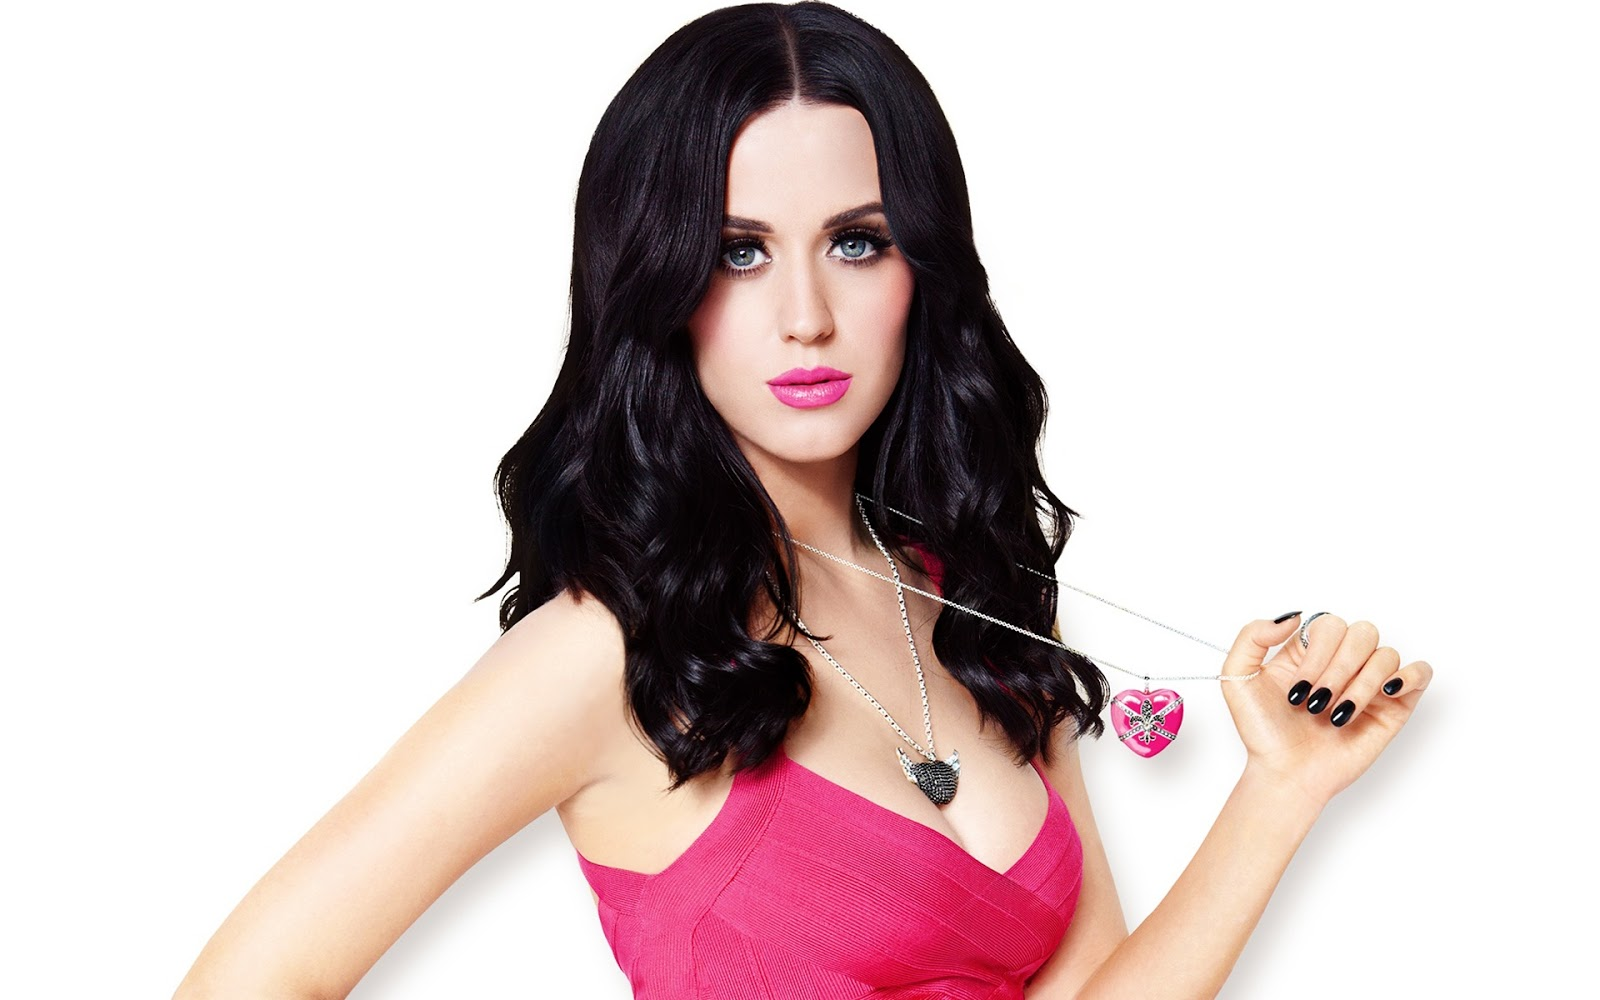 Katy Perry - FHM 100 Sexiest 2014